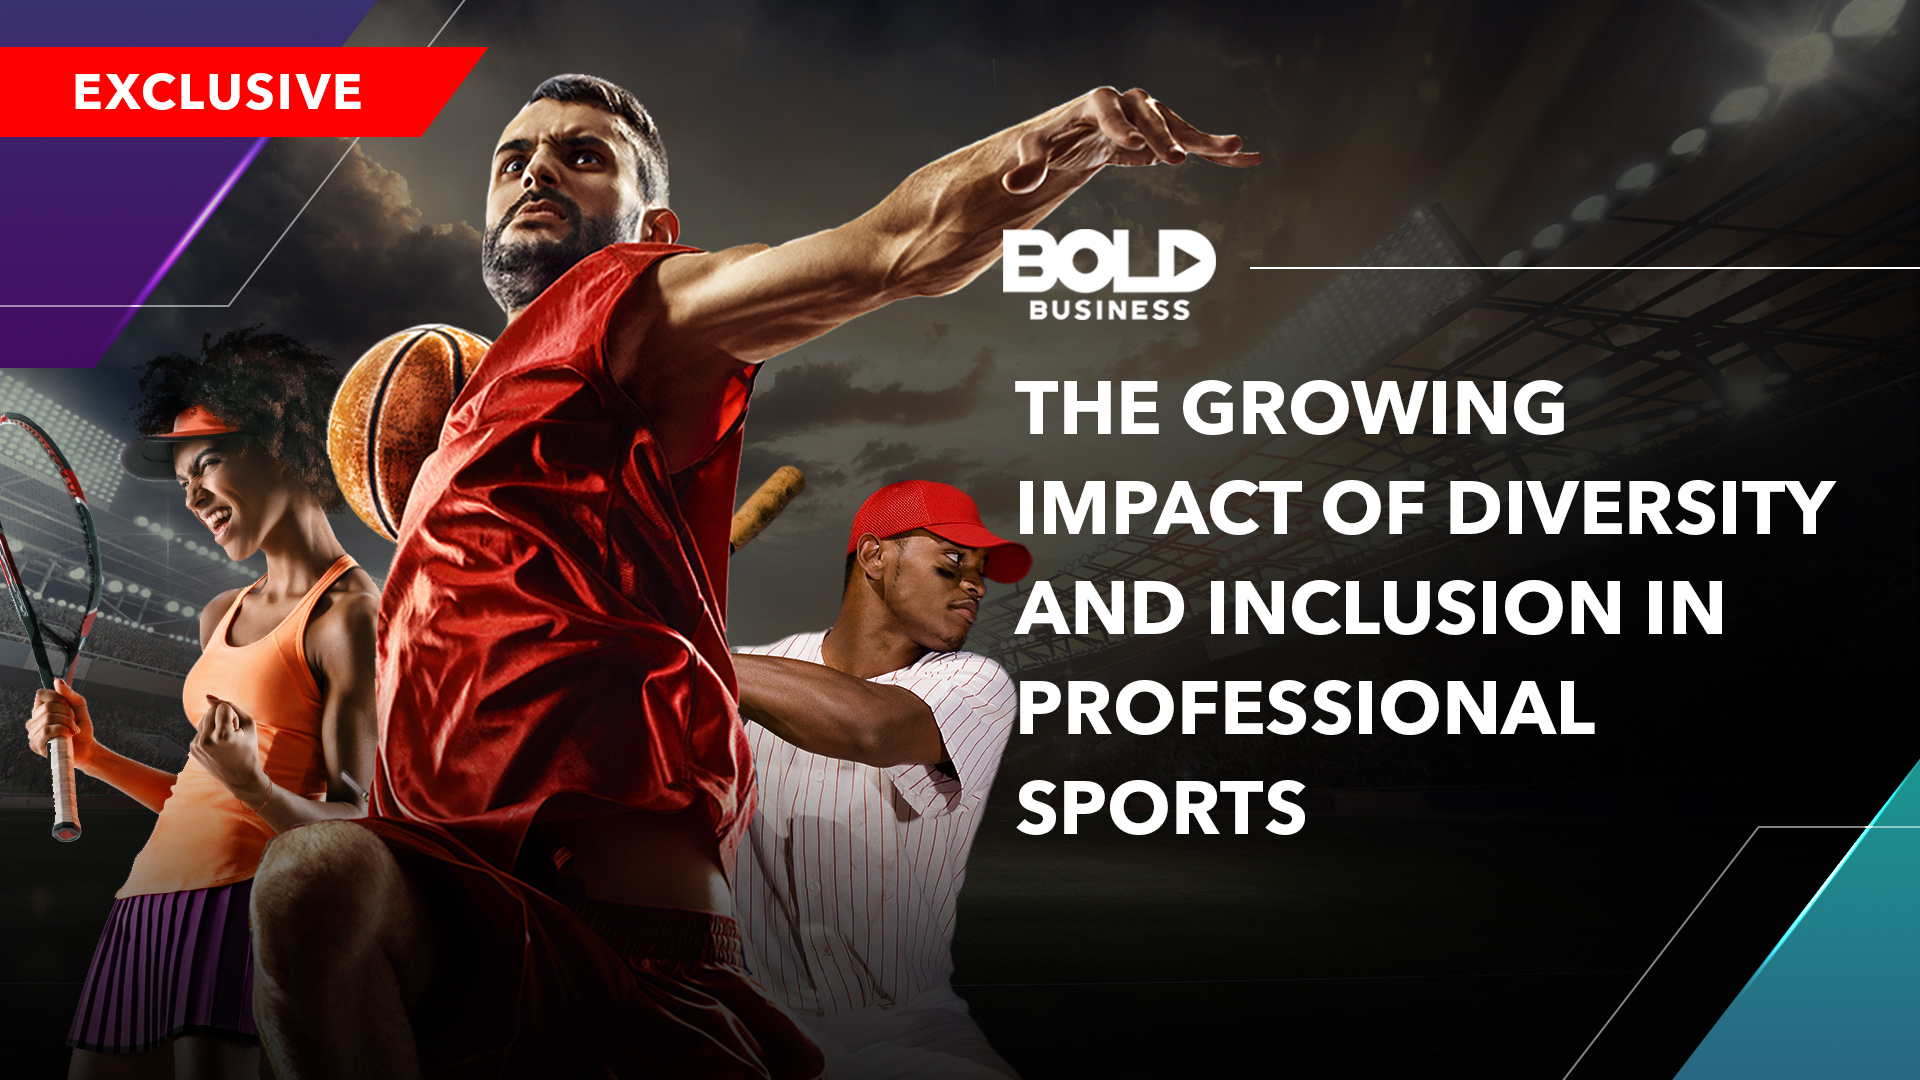 image The Growing Impact of Diversity and Inclusion in Professional Sports